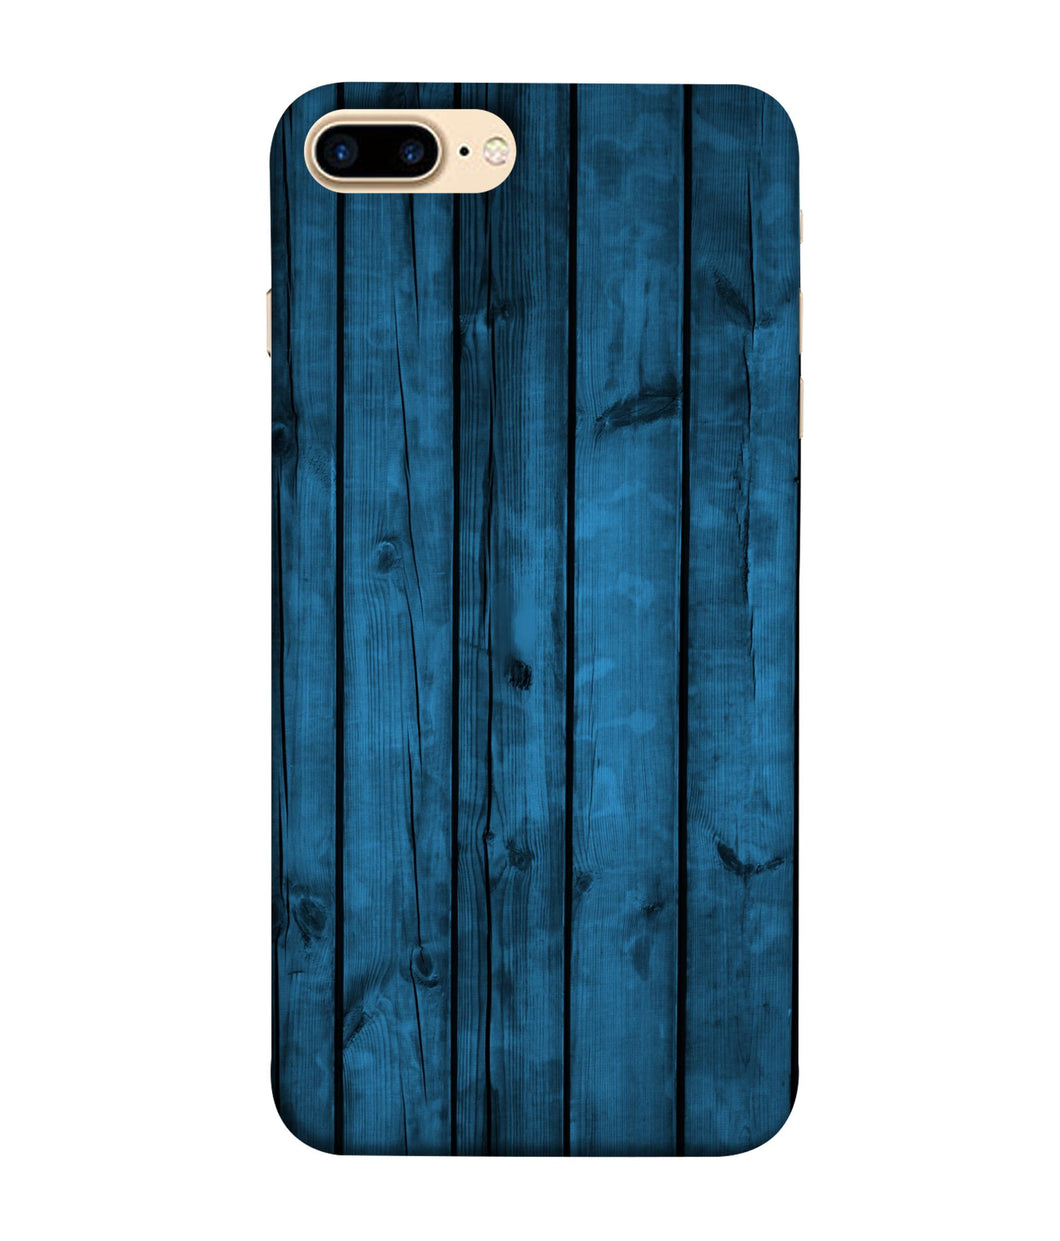 Apple Iphone 7 Plus Bluewood mobile cover